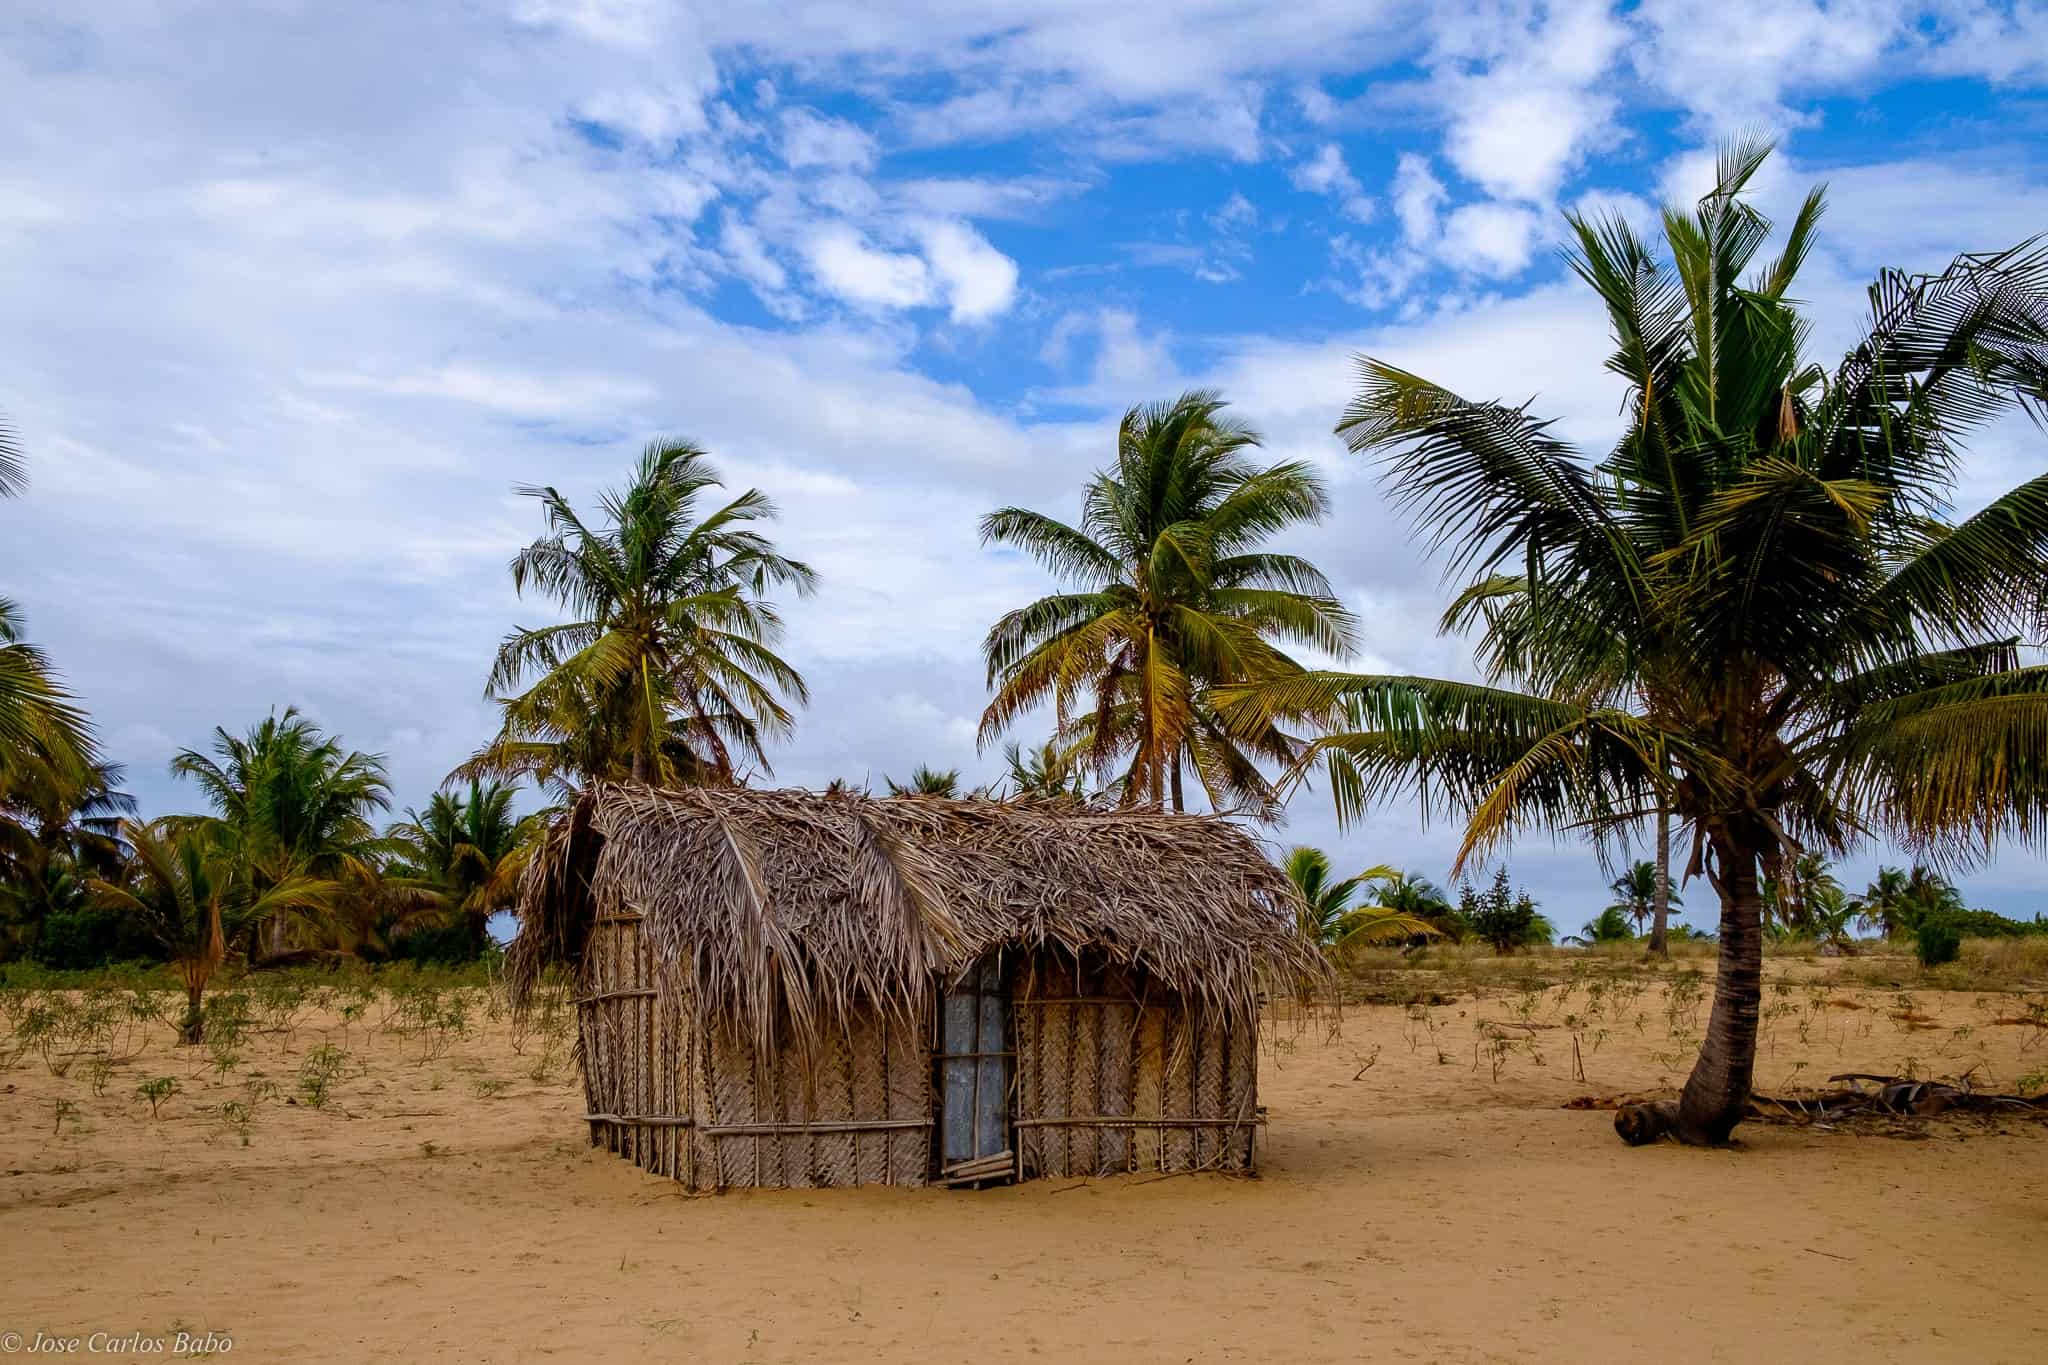 A small, traditional beach hut in Tofo, Mozambique